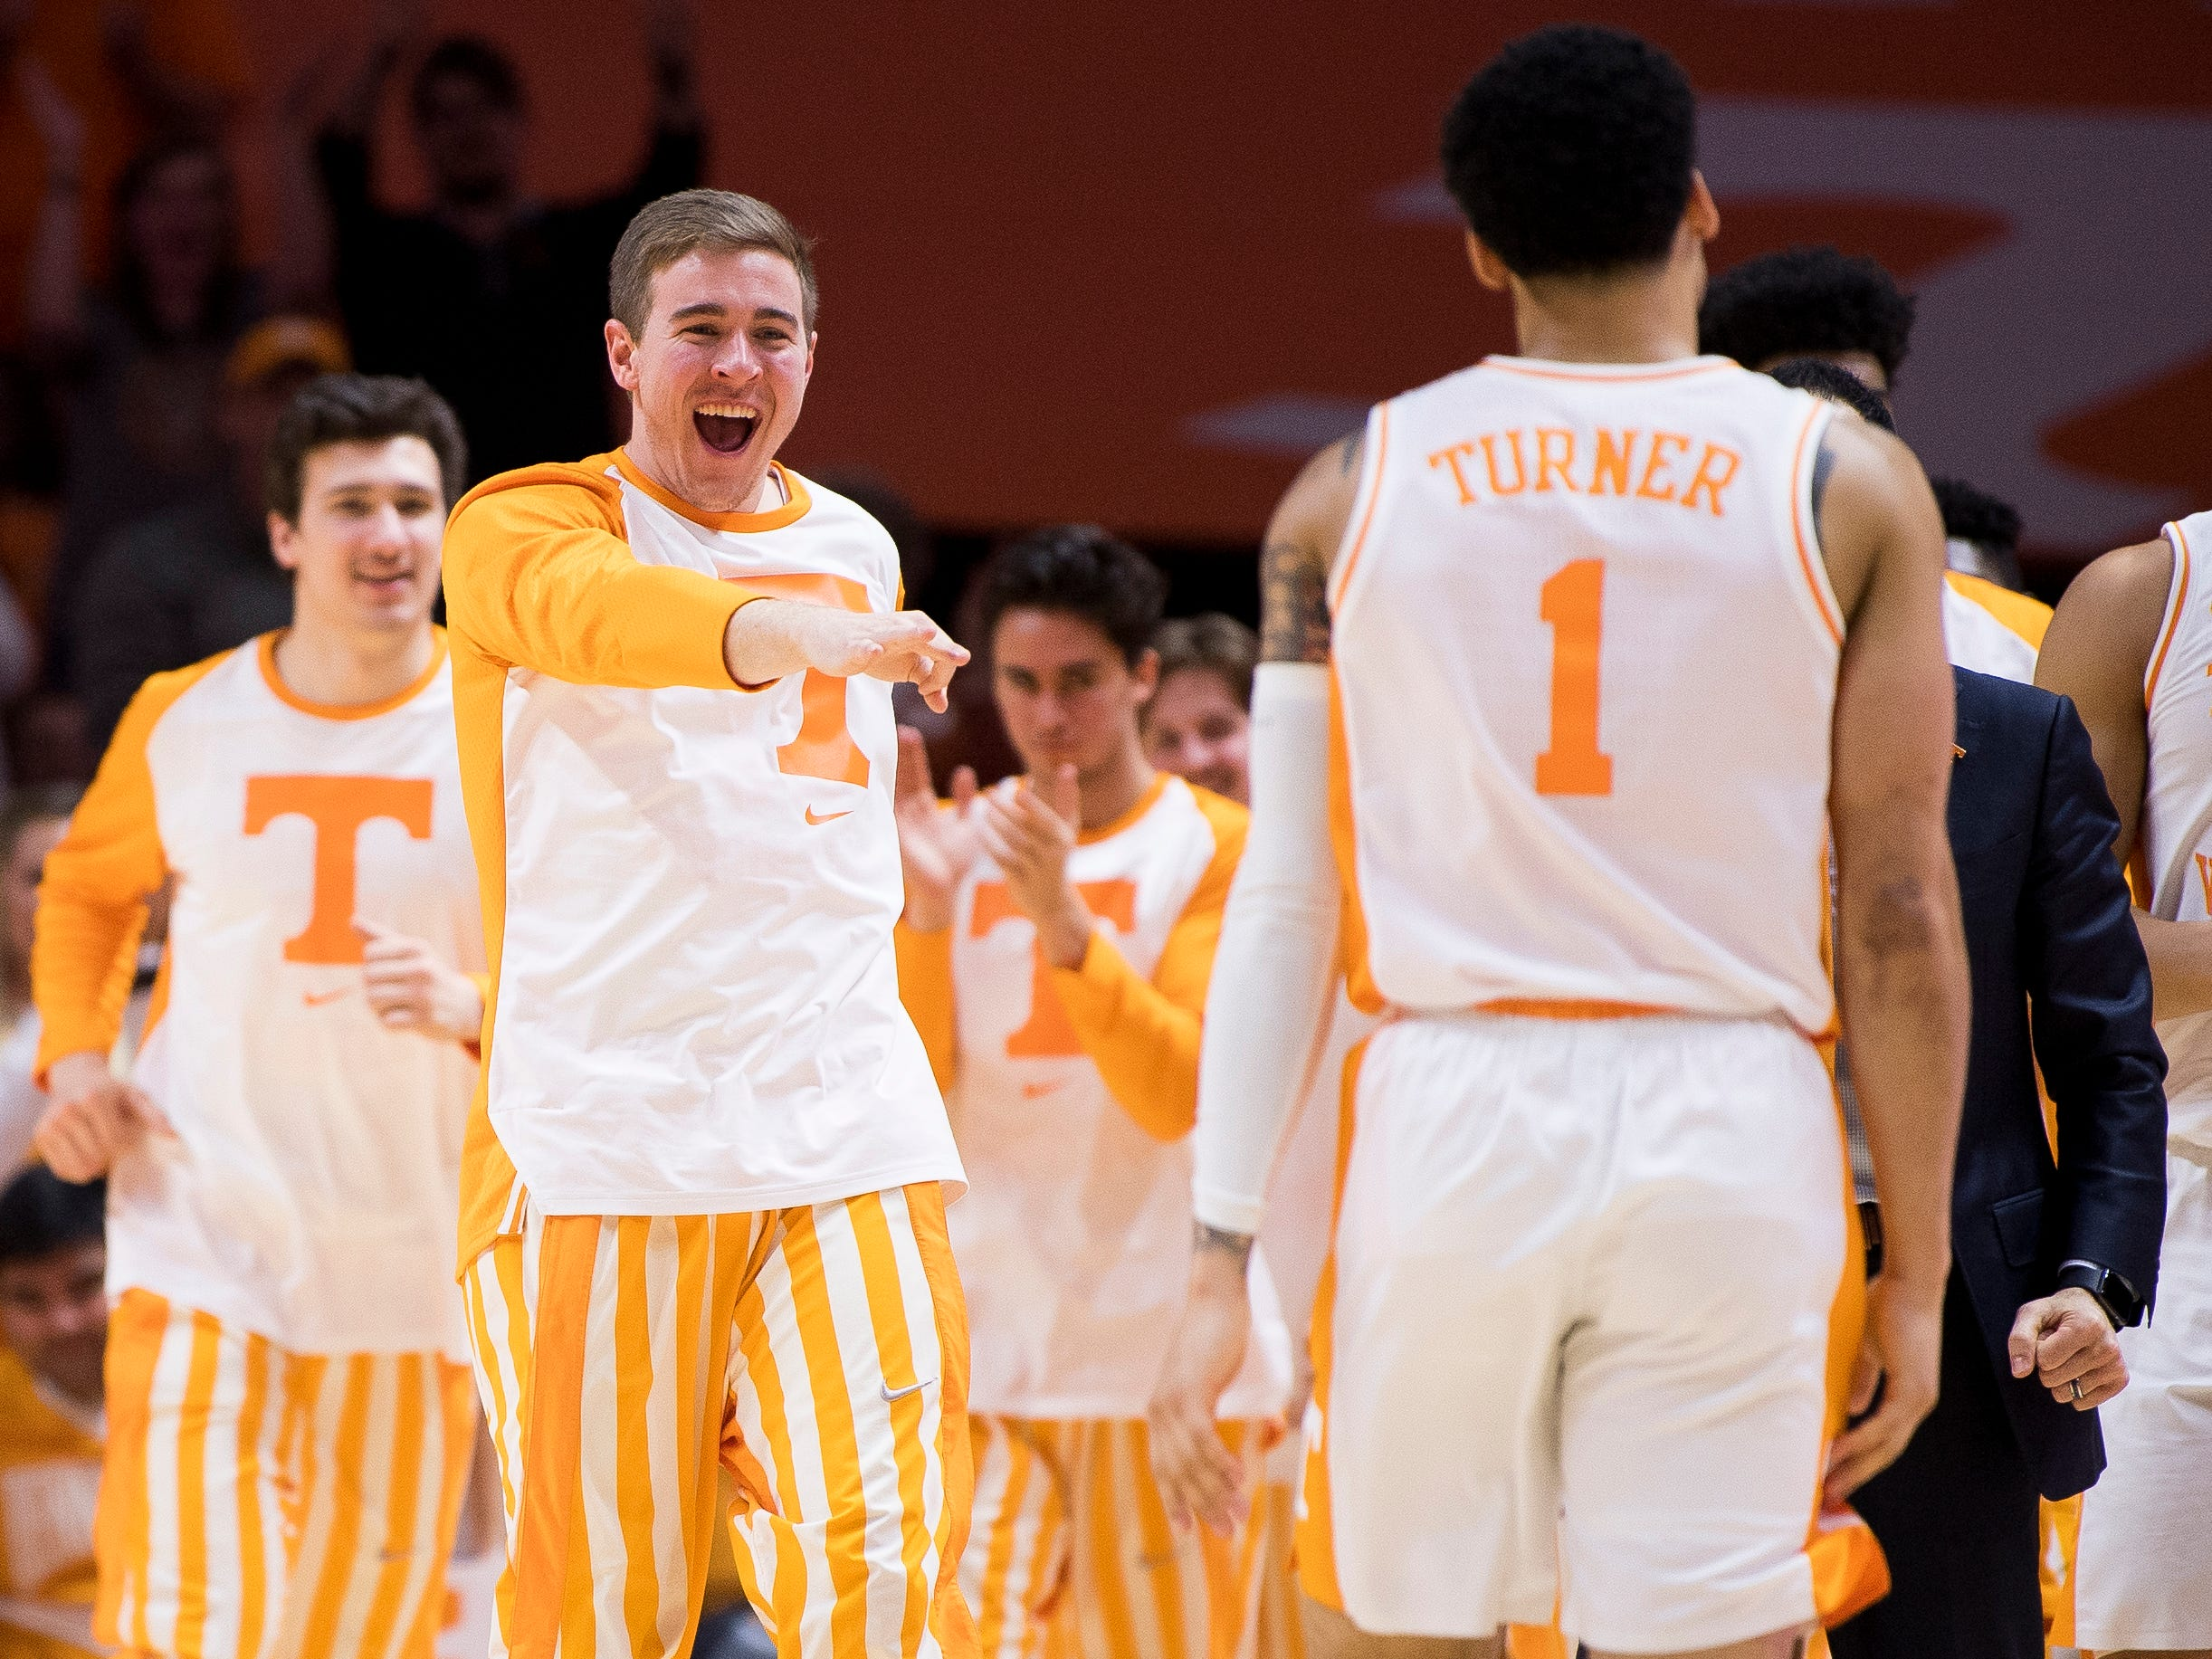 Tennessee guard Brad Woodson (12) celebrates as Tennessee takes a timeout during Tennessee's home SEC conference game against Florida at Thompson-Boling Arena in Knoxville on Saturday, February 9, 2019.